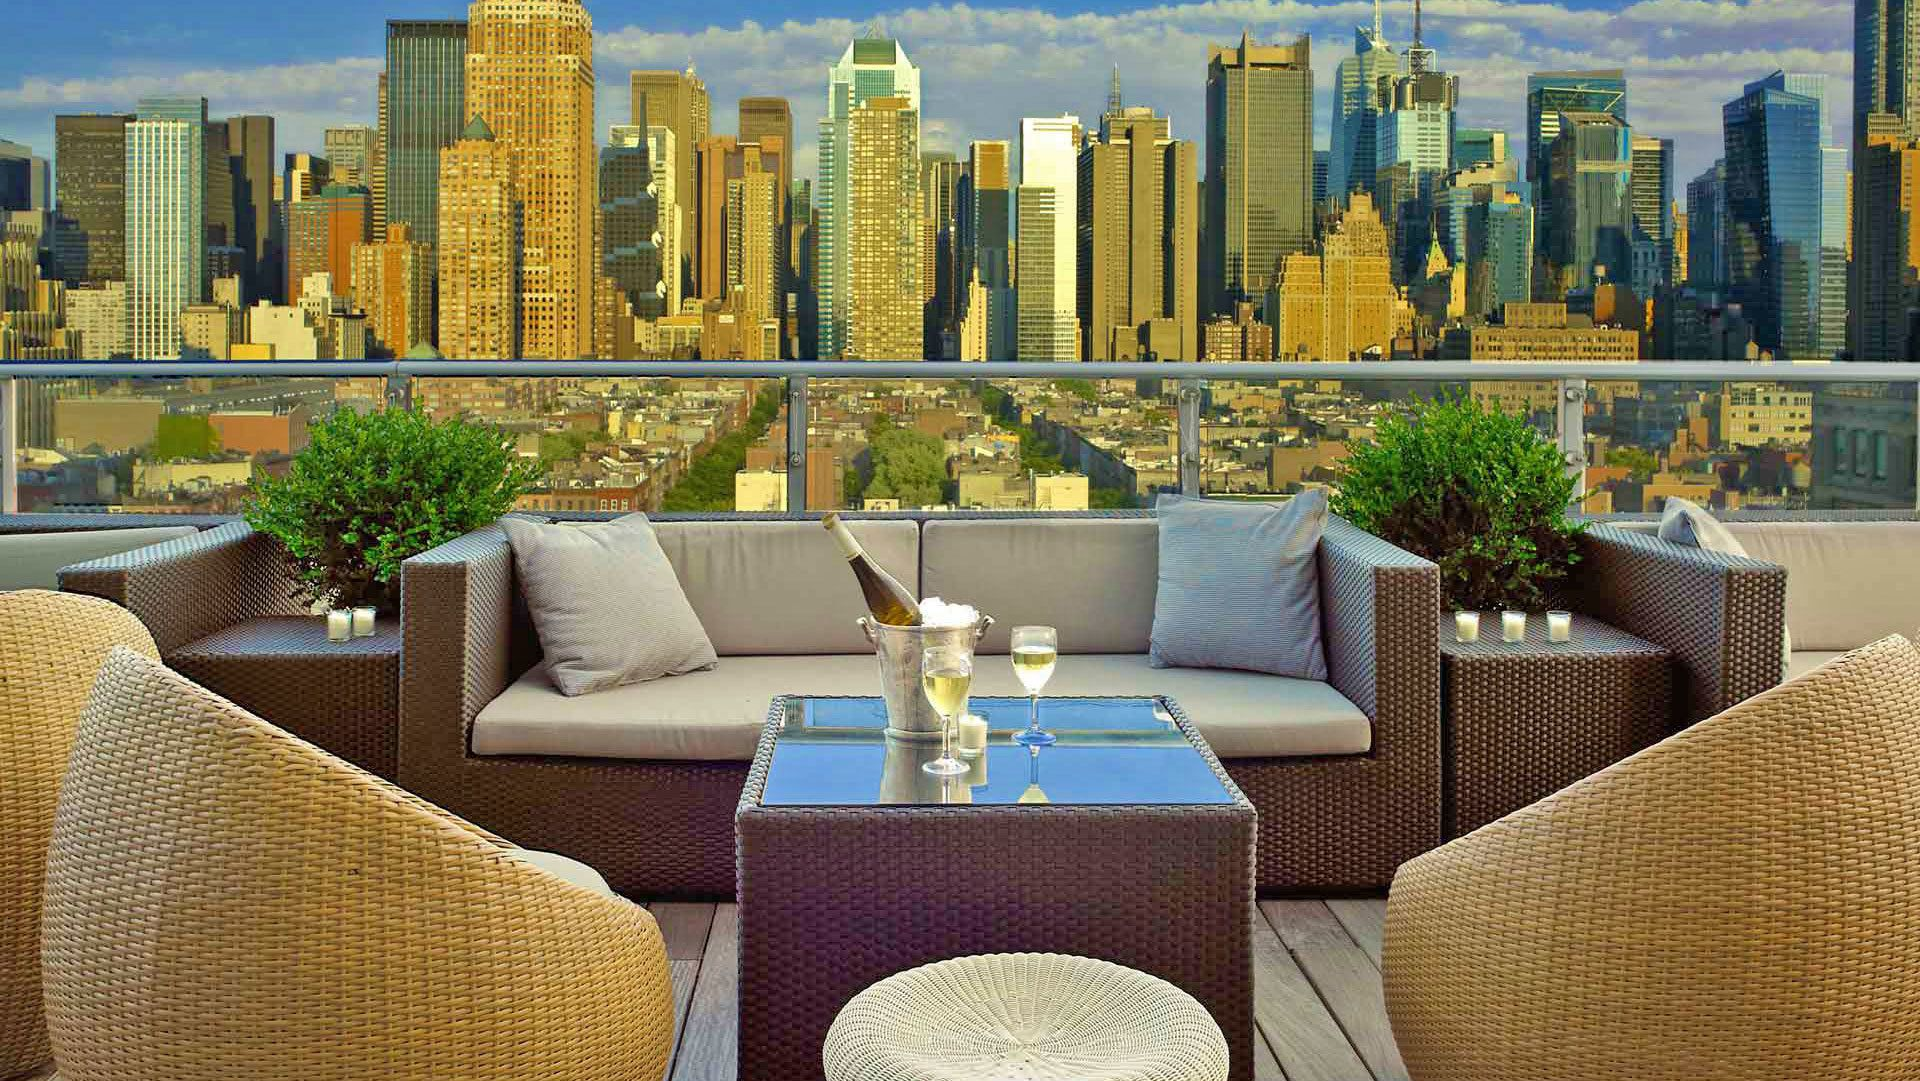 Lounge area rooftop in New York